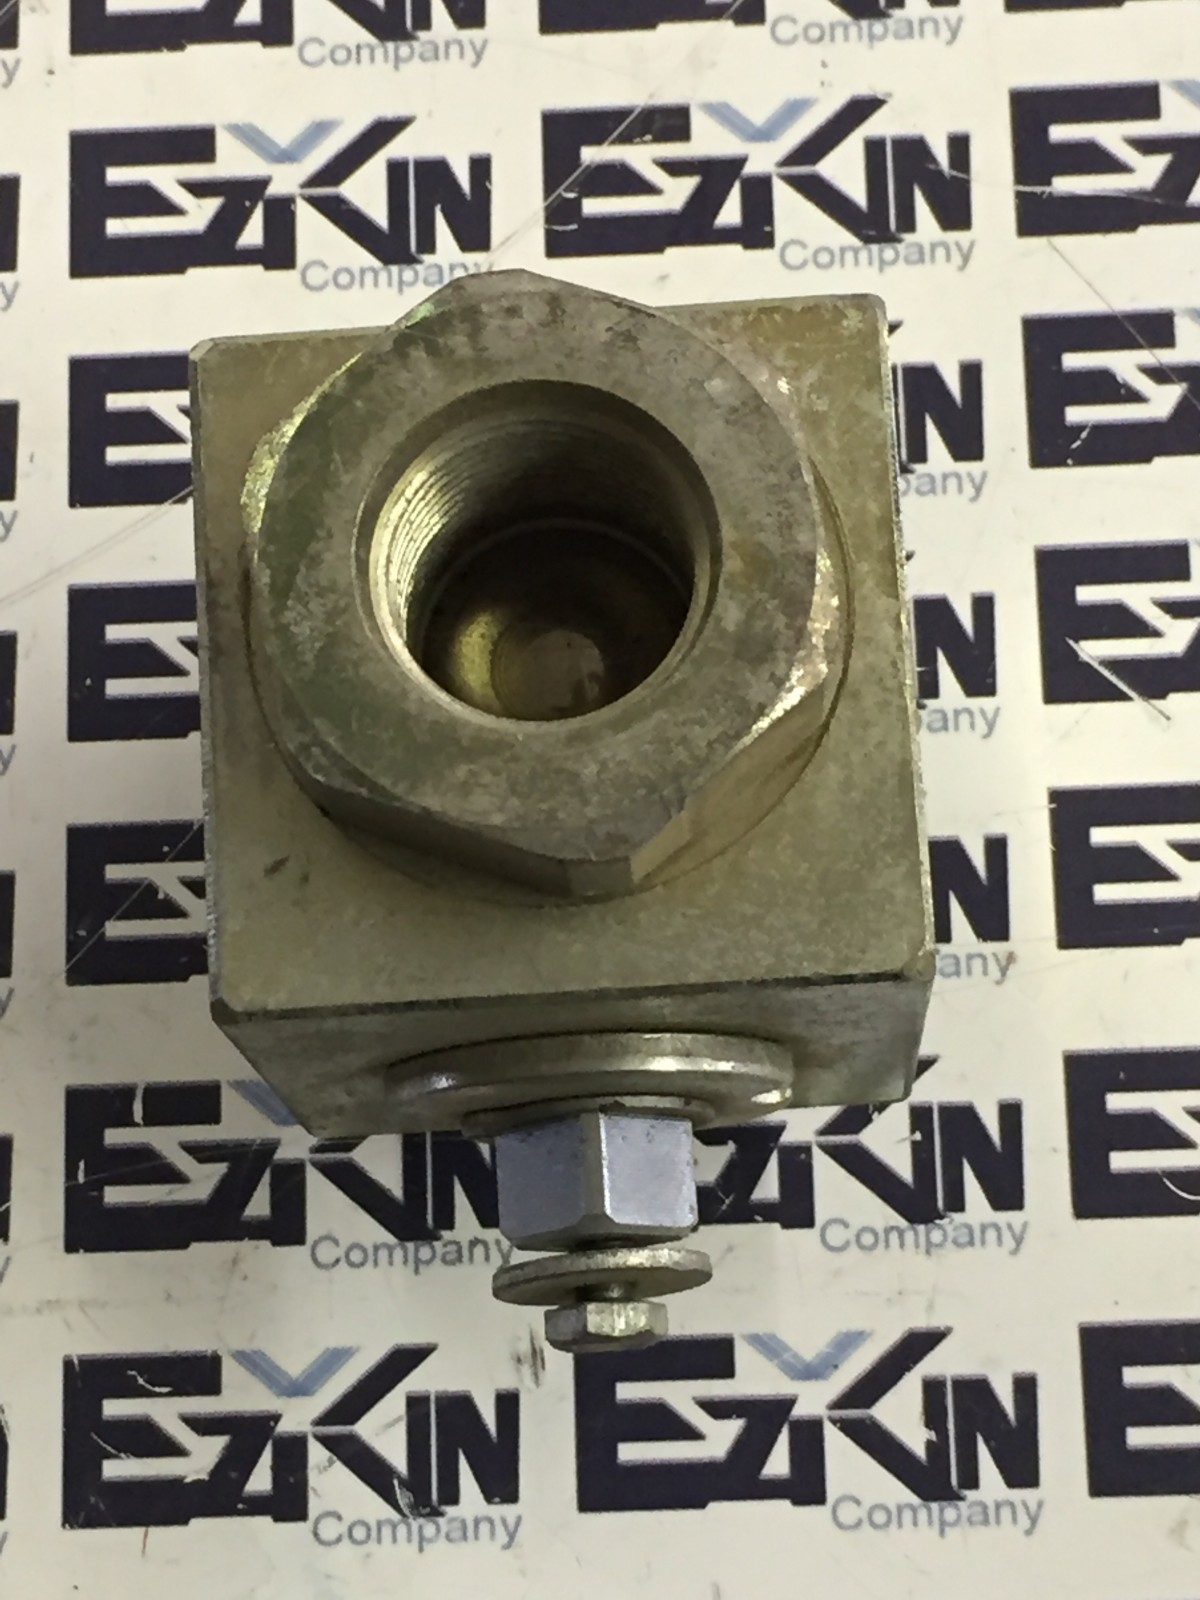 ANCHOR FLANGE BKHG3/4 SAE 5800 PSI BALL VALVE